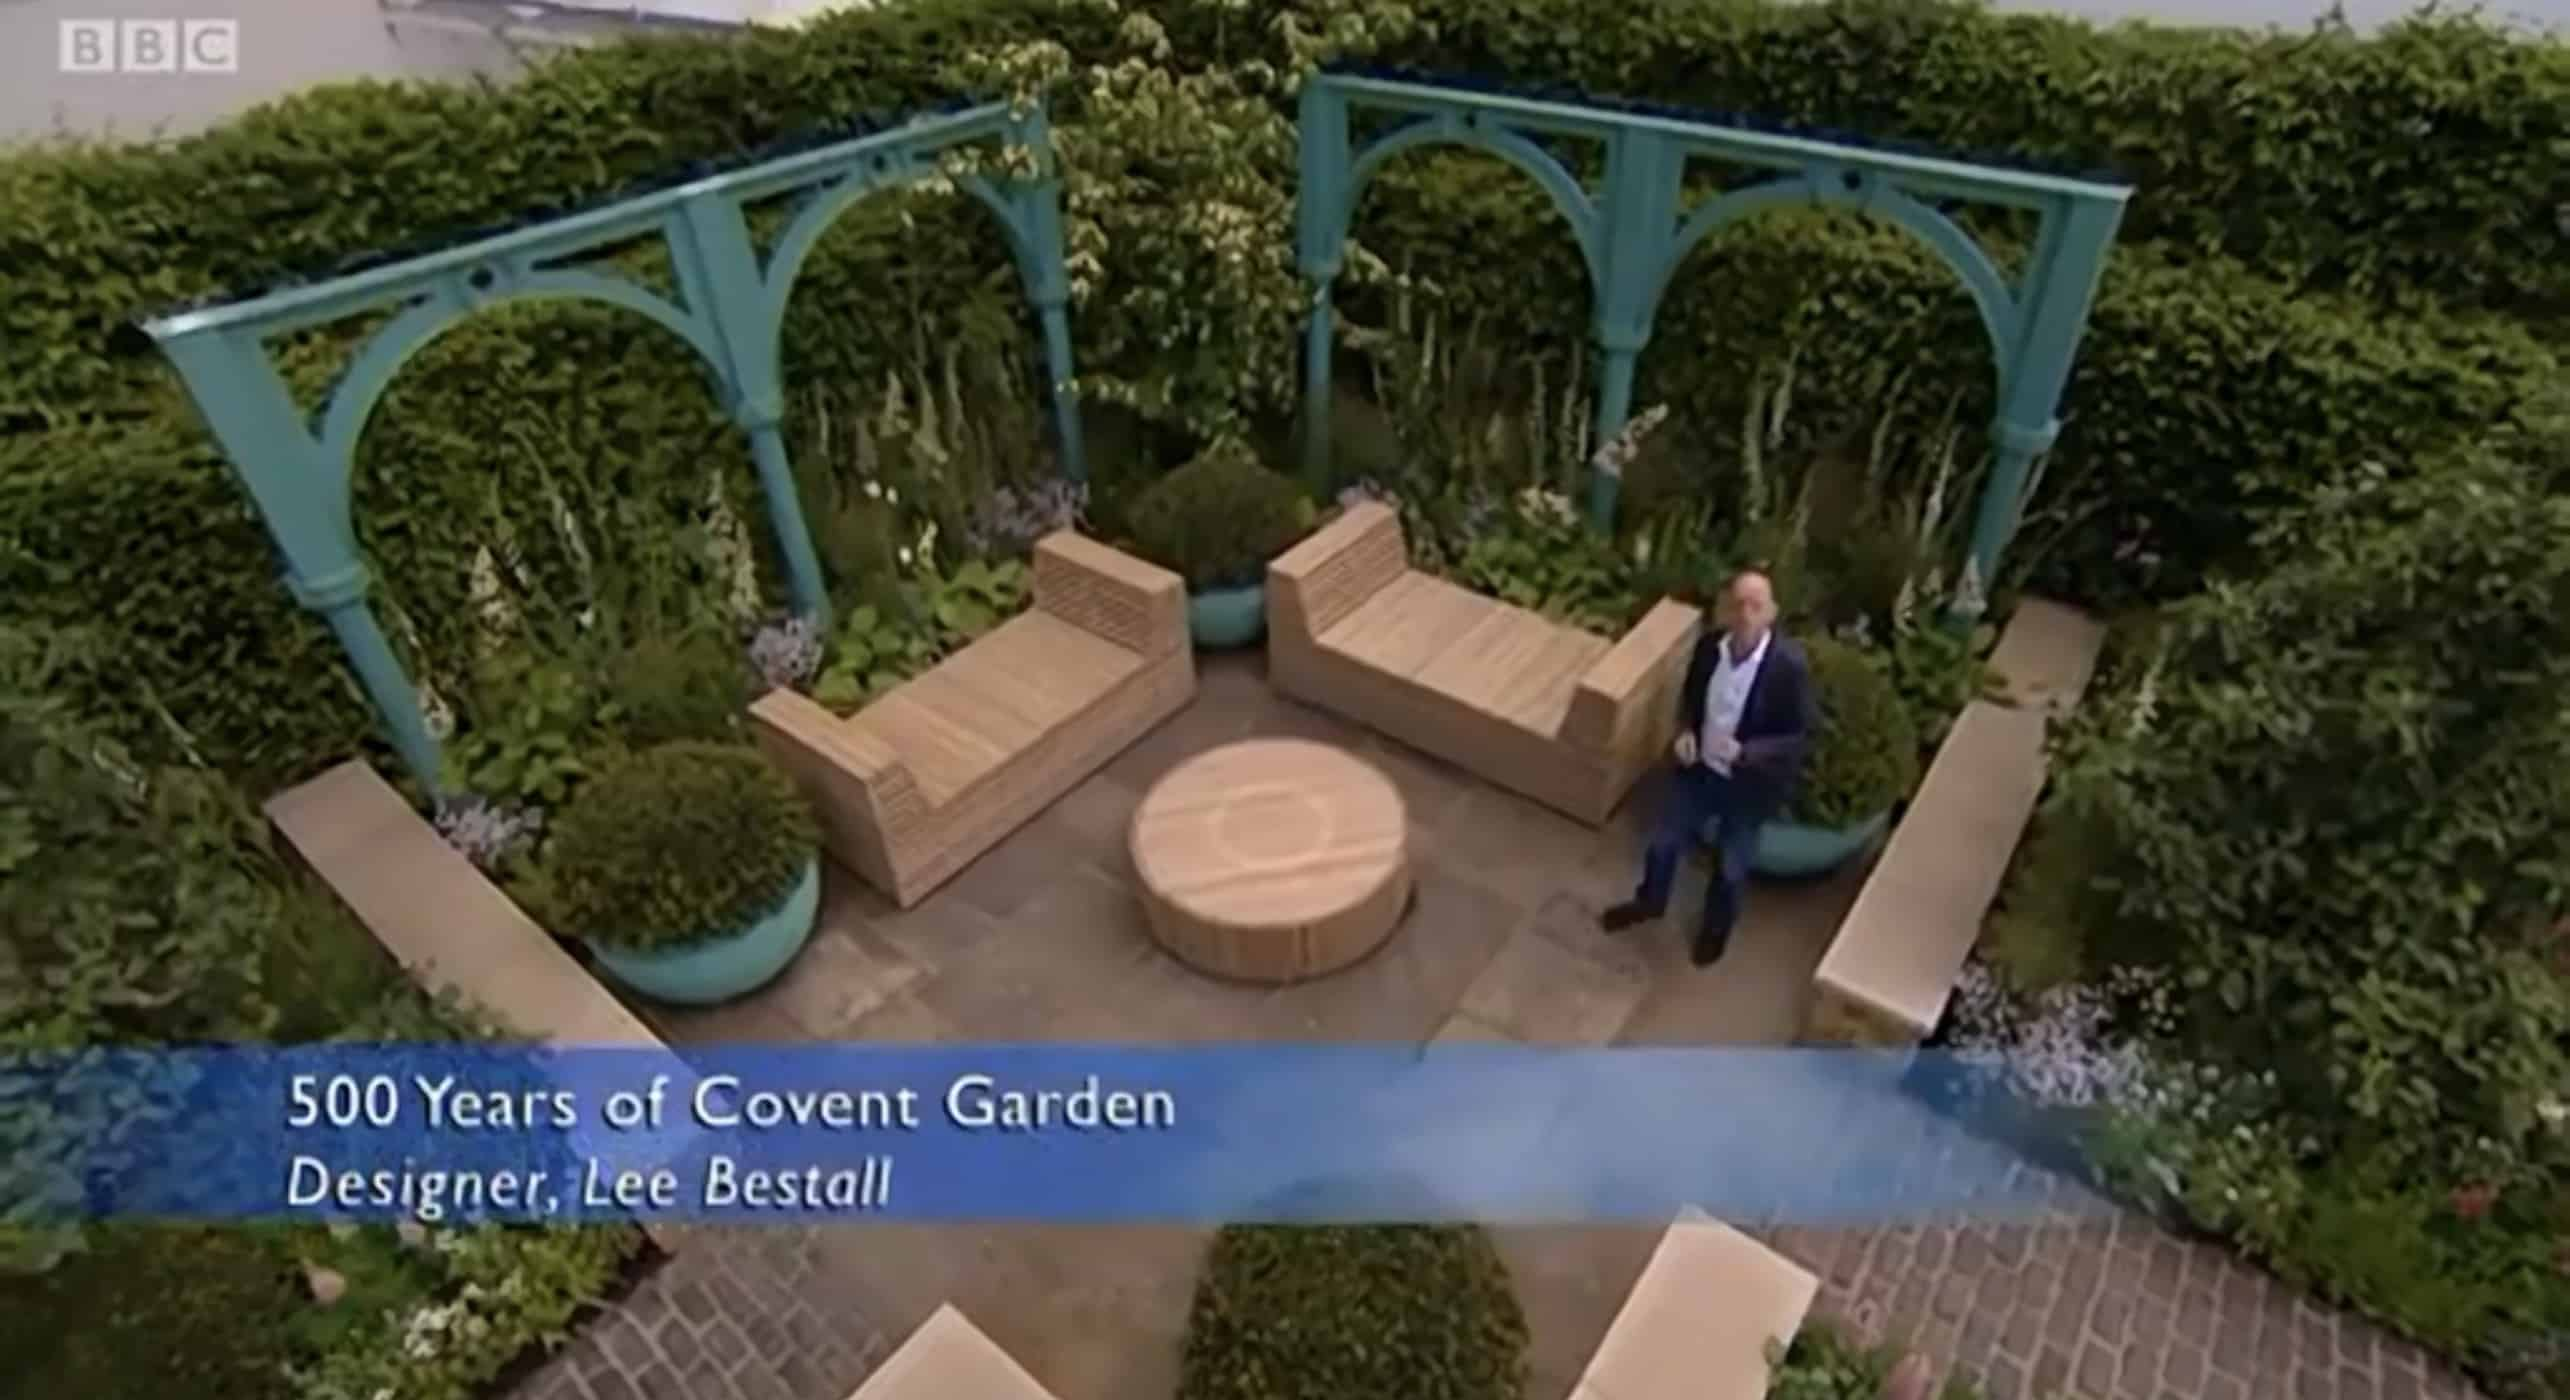 yorkshire designers well represented at rhs chelsea flower show